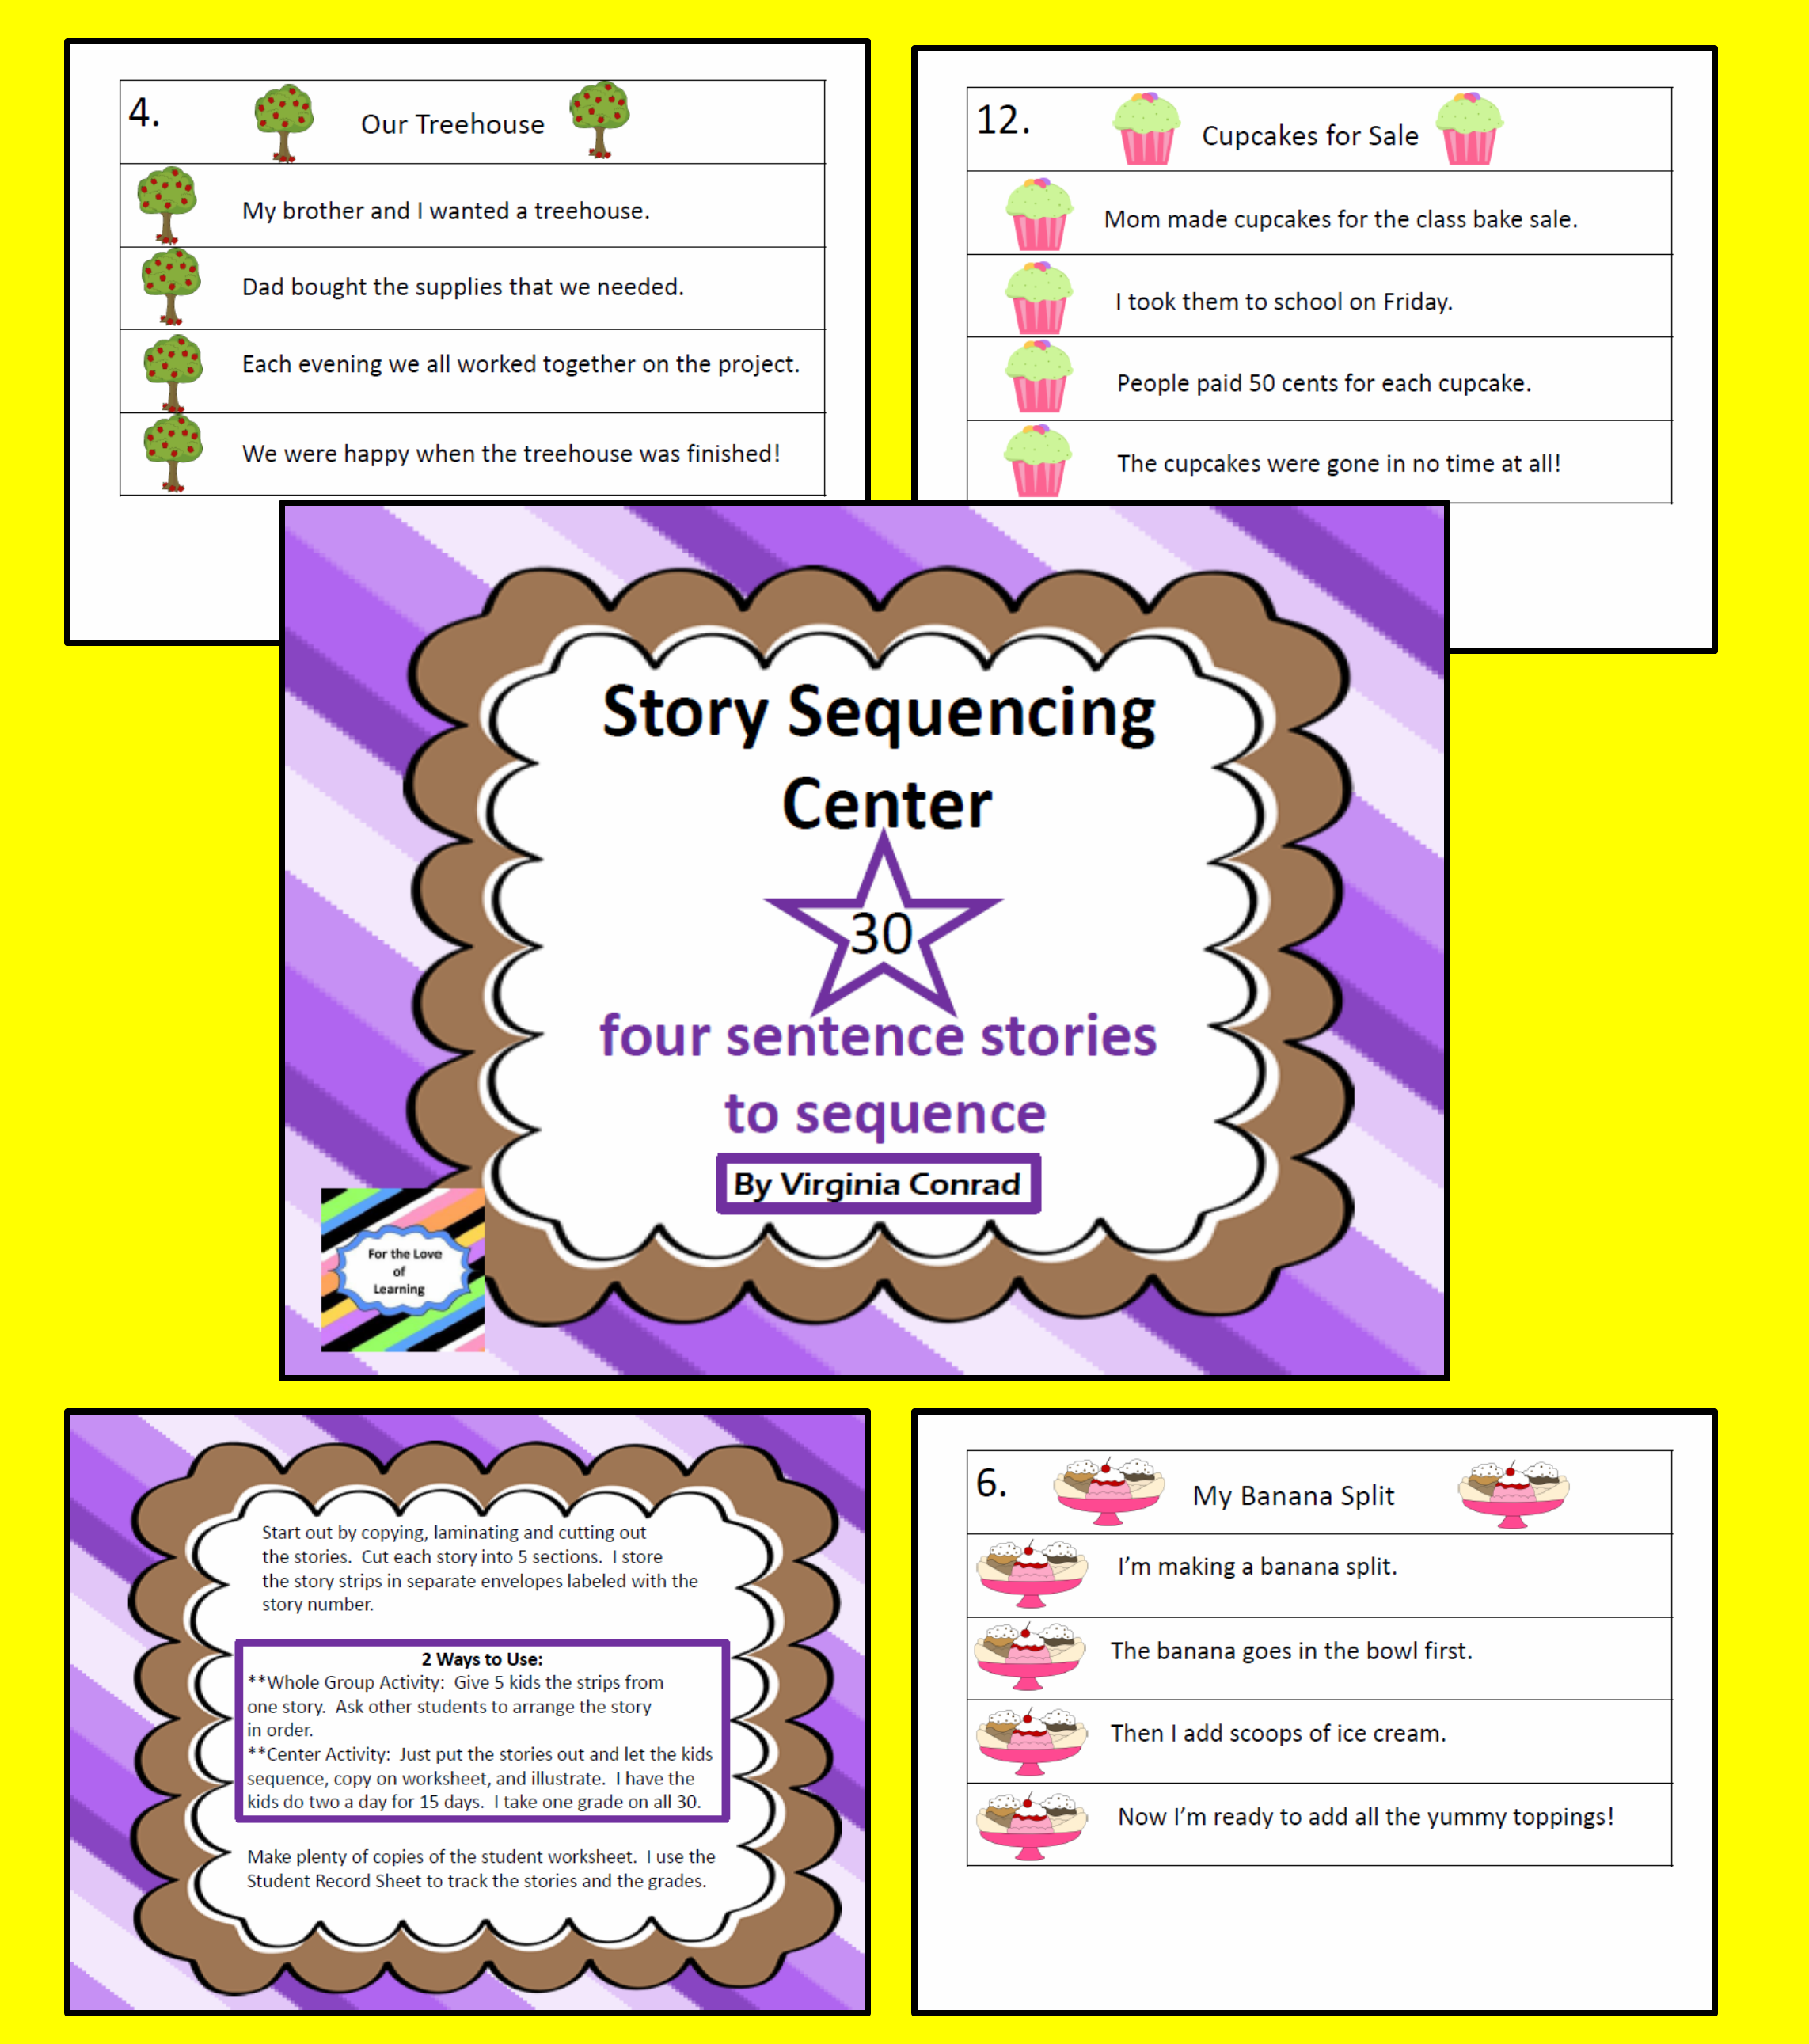 worksheet Put The Story In Order Worksheet story sequencing center 30 four sentence stories to put in order order